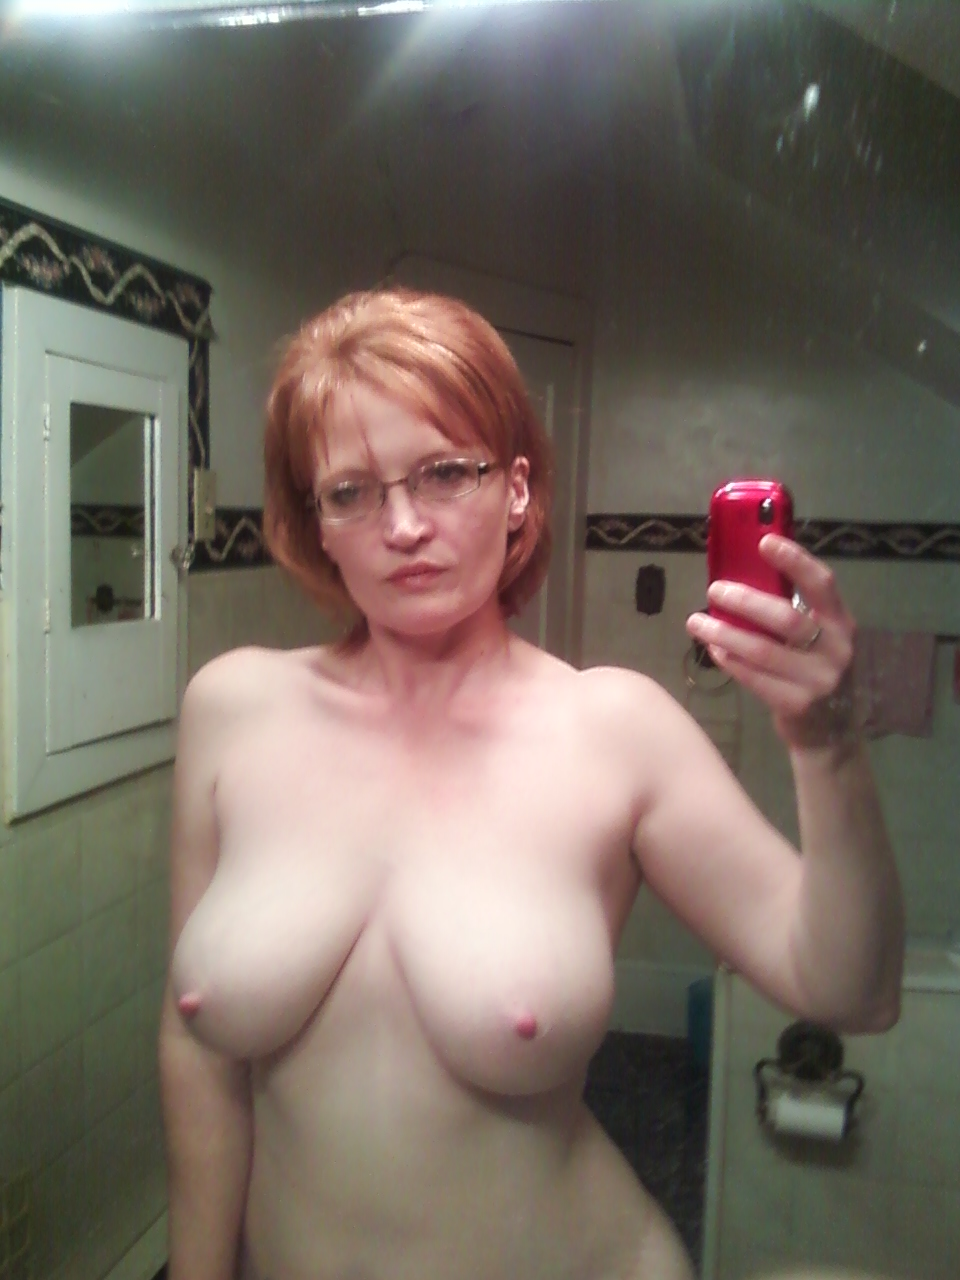 moms private nude self shot pics